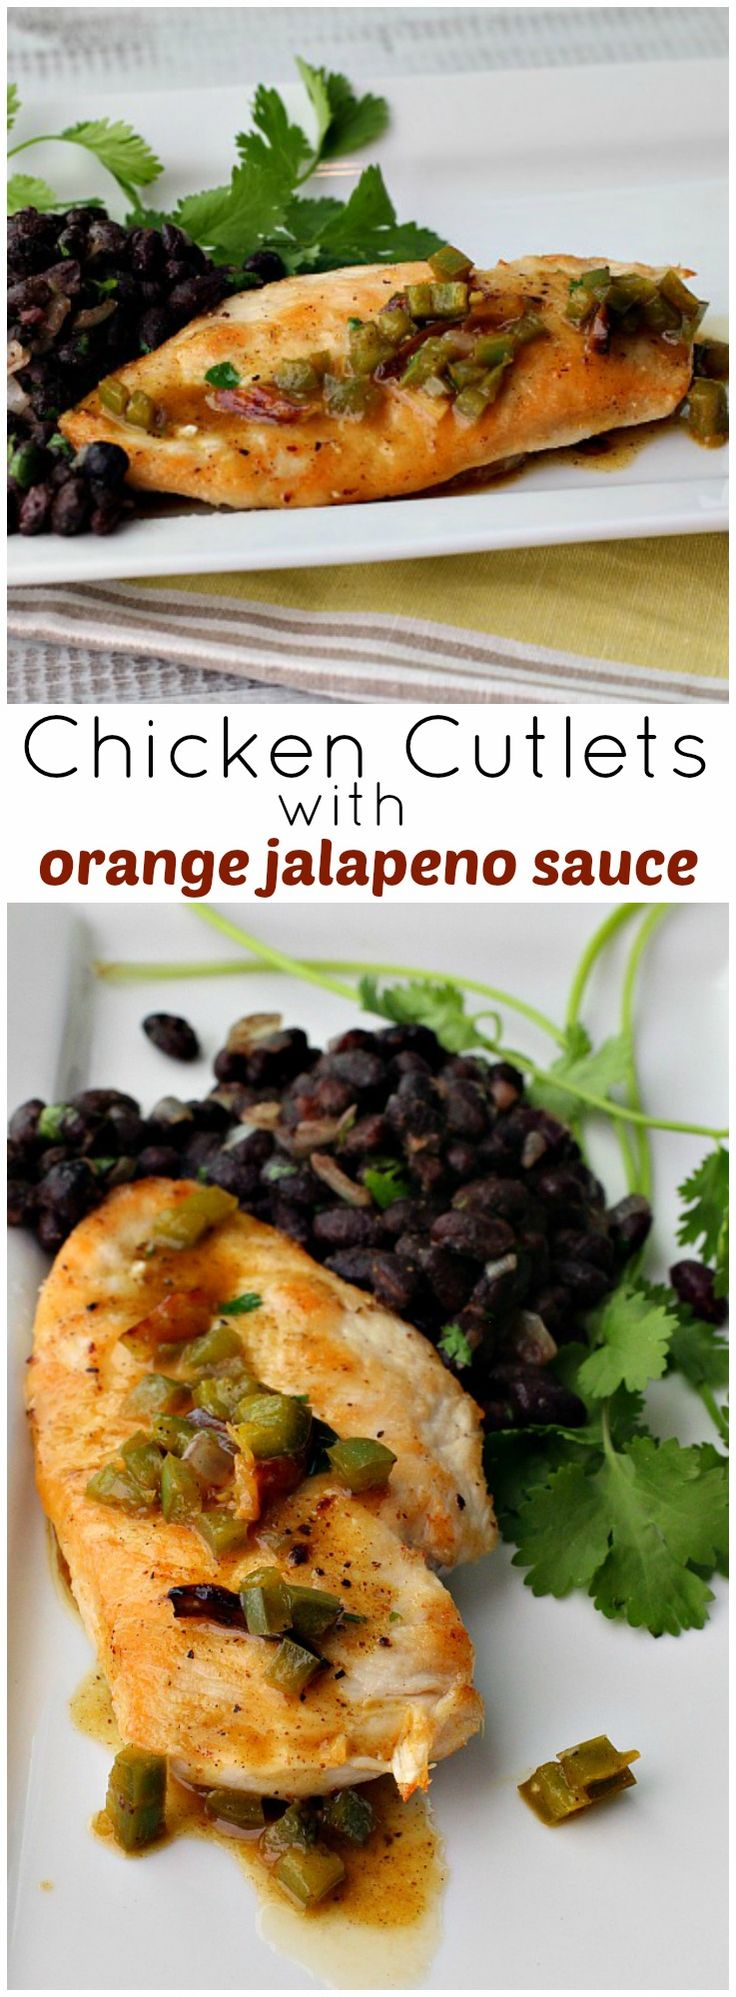 A chicken dinner recipe that's easy enough for a weeknight meal and impressive enough for entertaining. Chicken Cutlets with Jalapeno Orange Sauce with Black Beans. via @lannisam